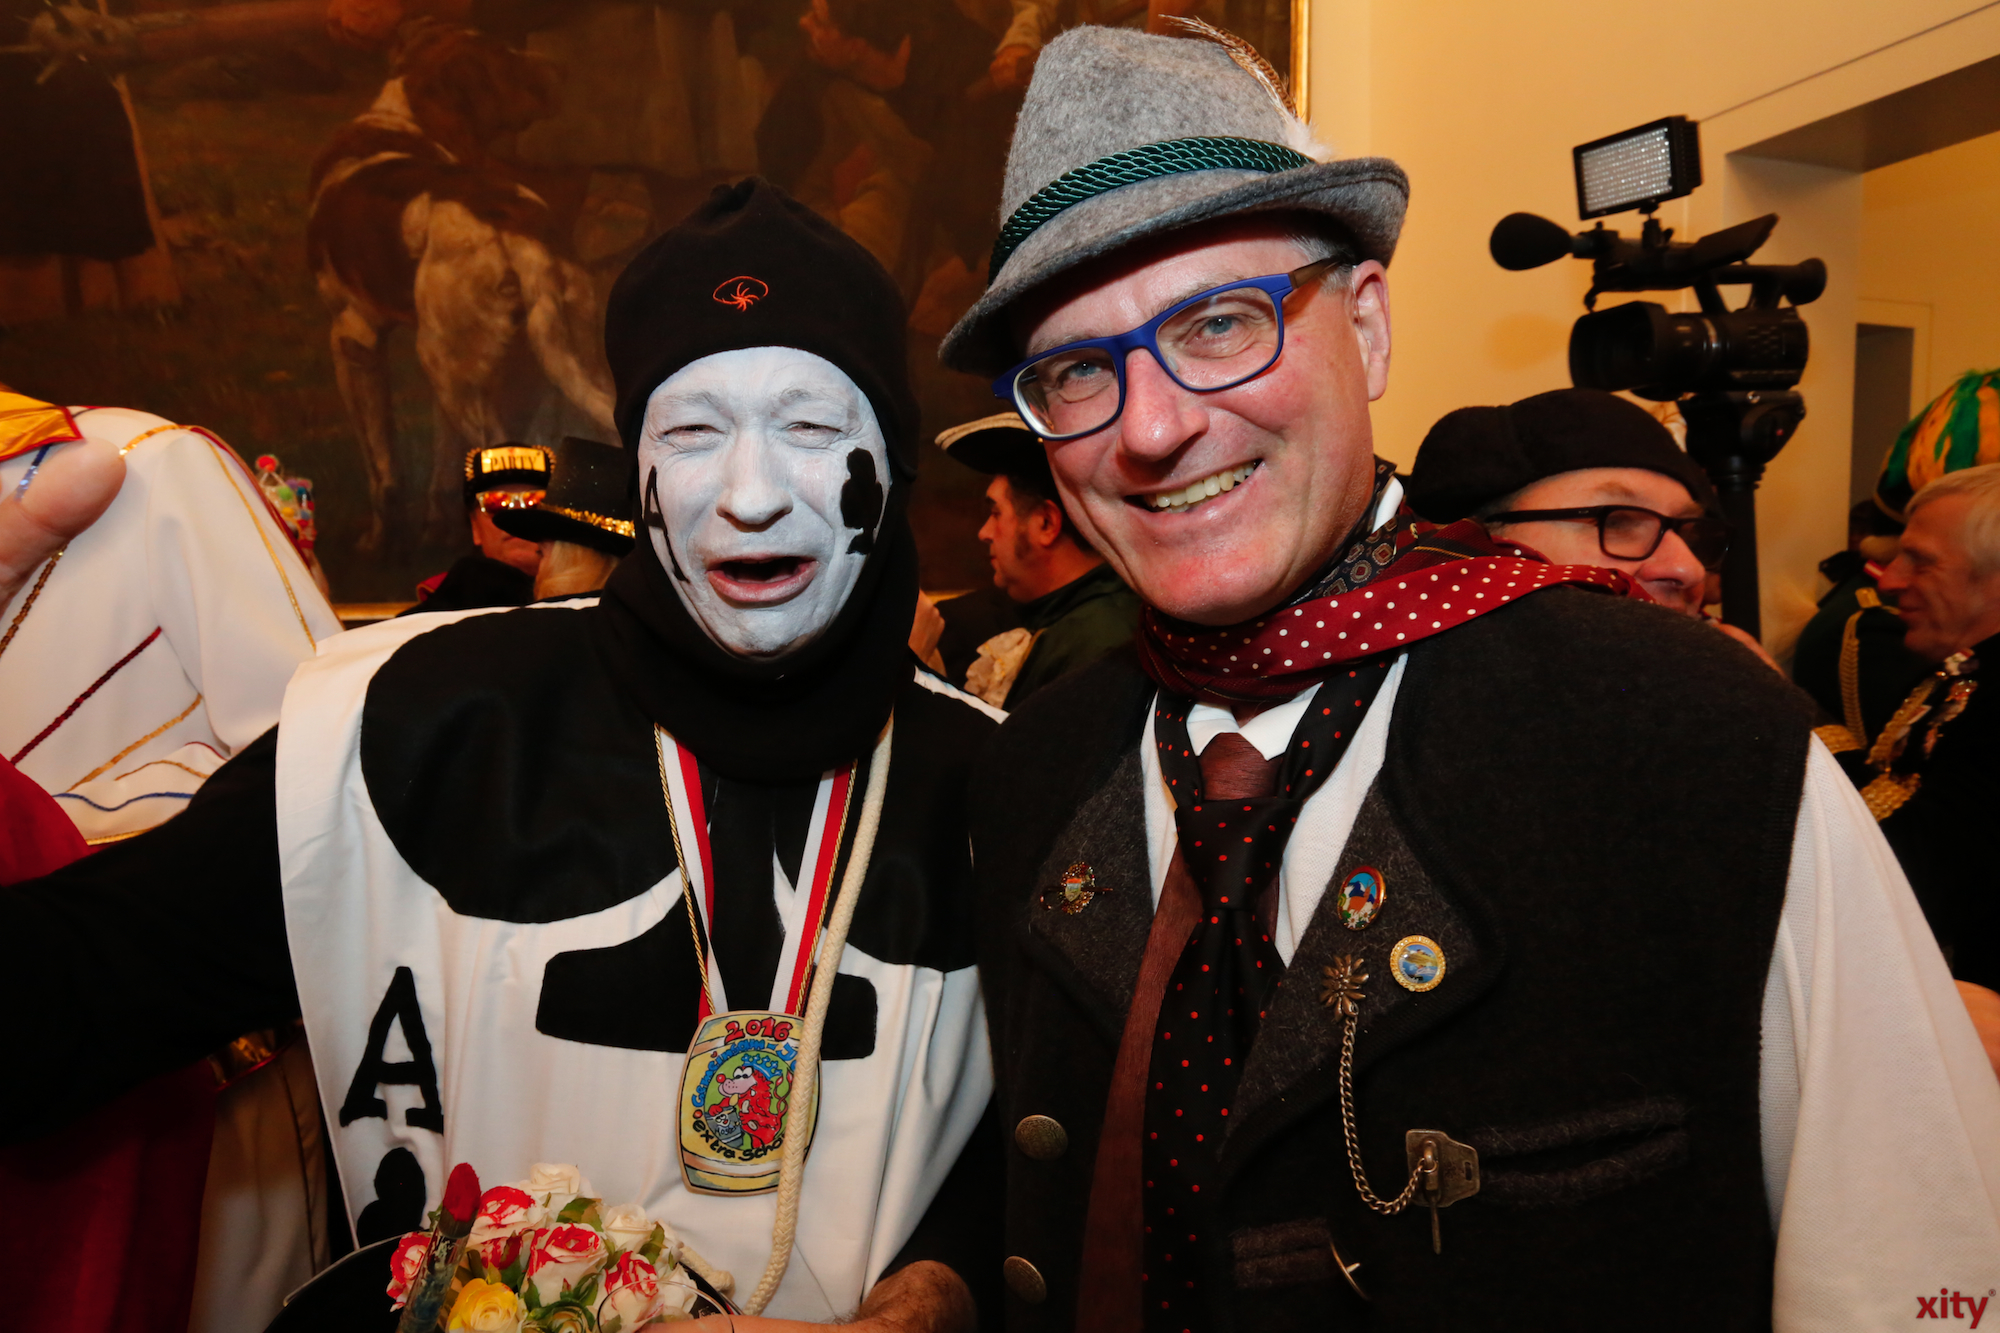 The city director of Düsseldorf came dressed as an ace of spades. (left) (Photo: xity)